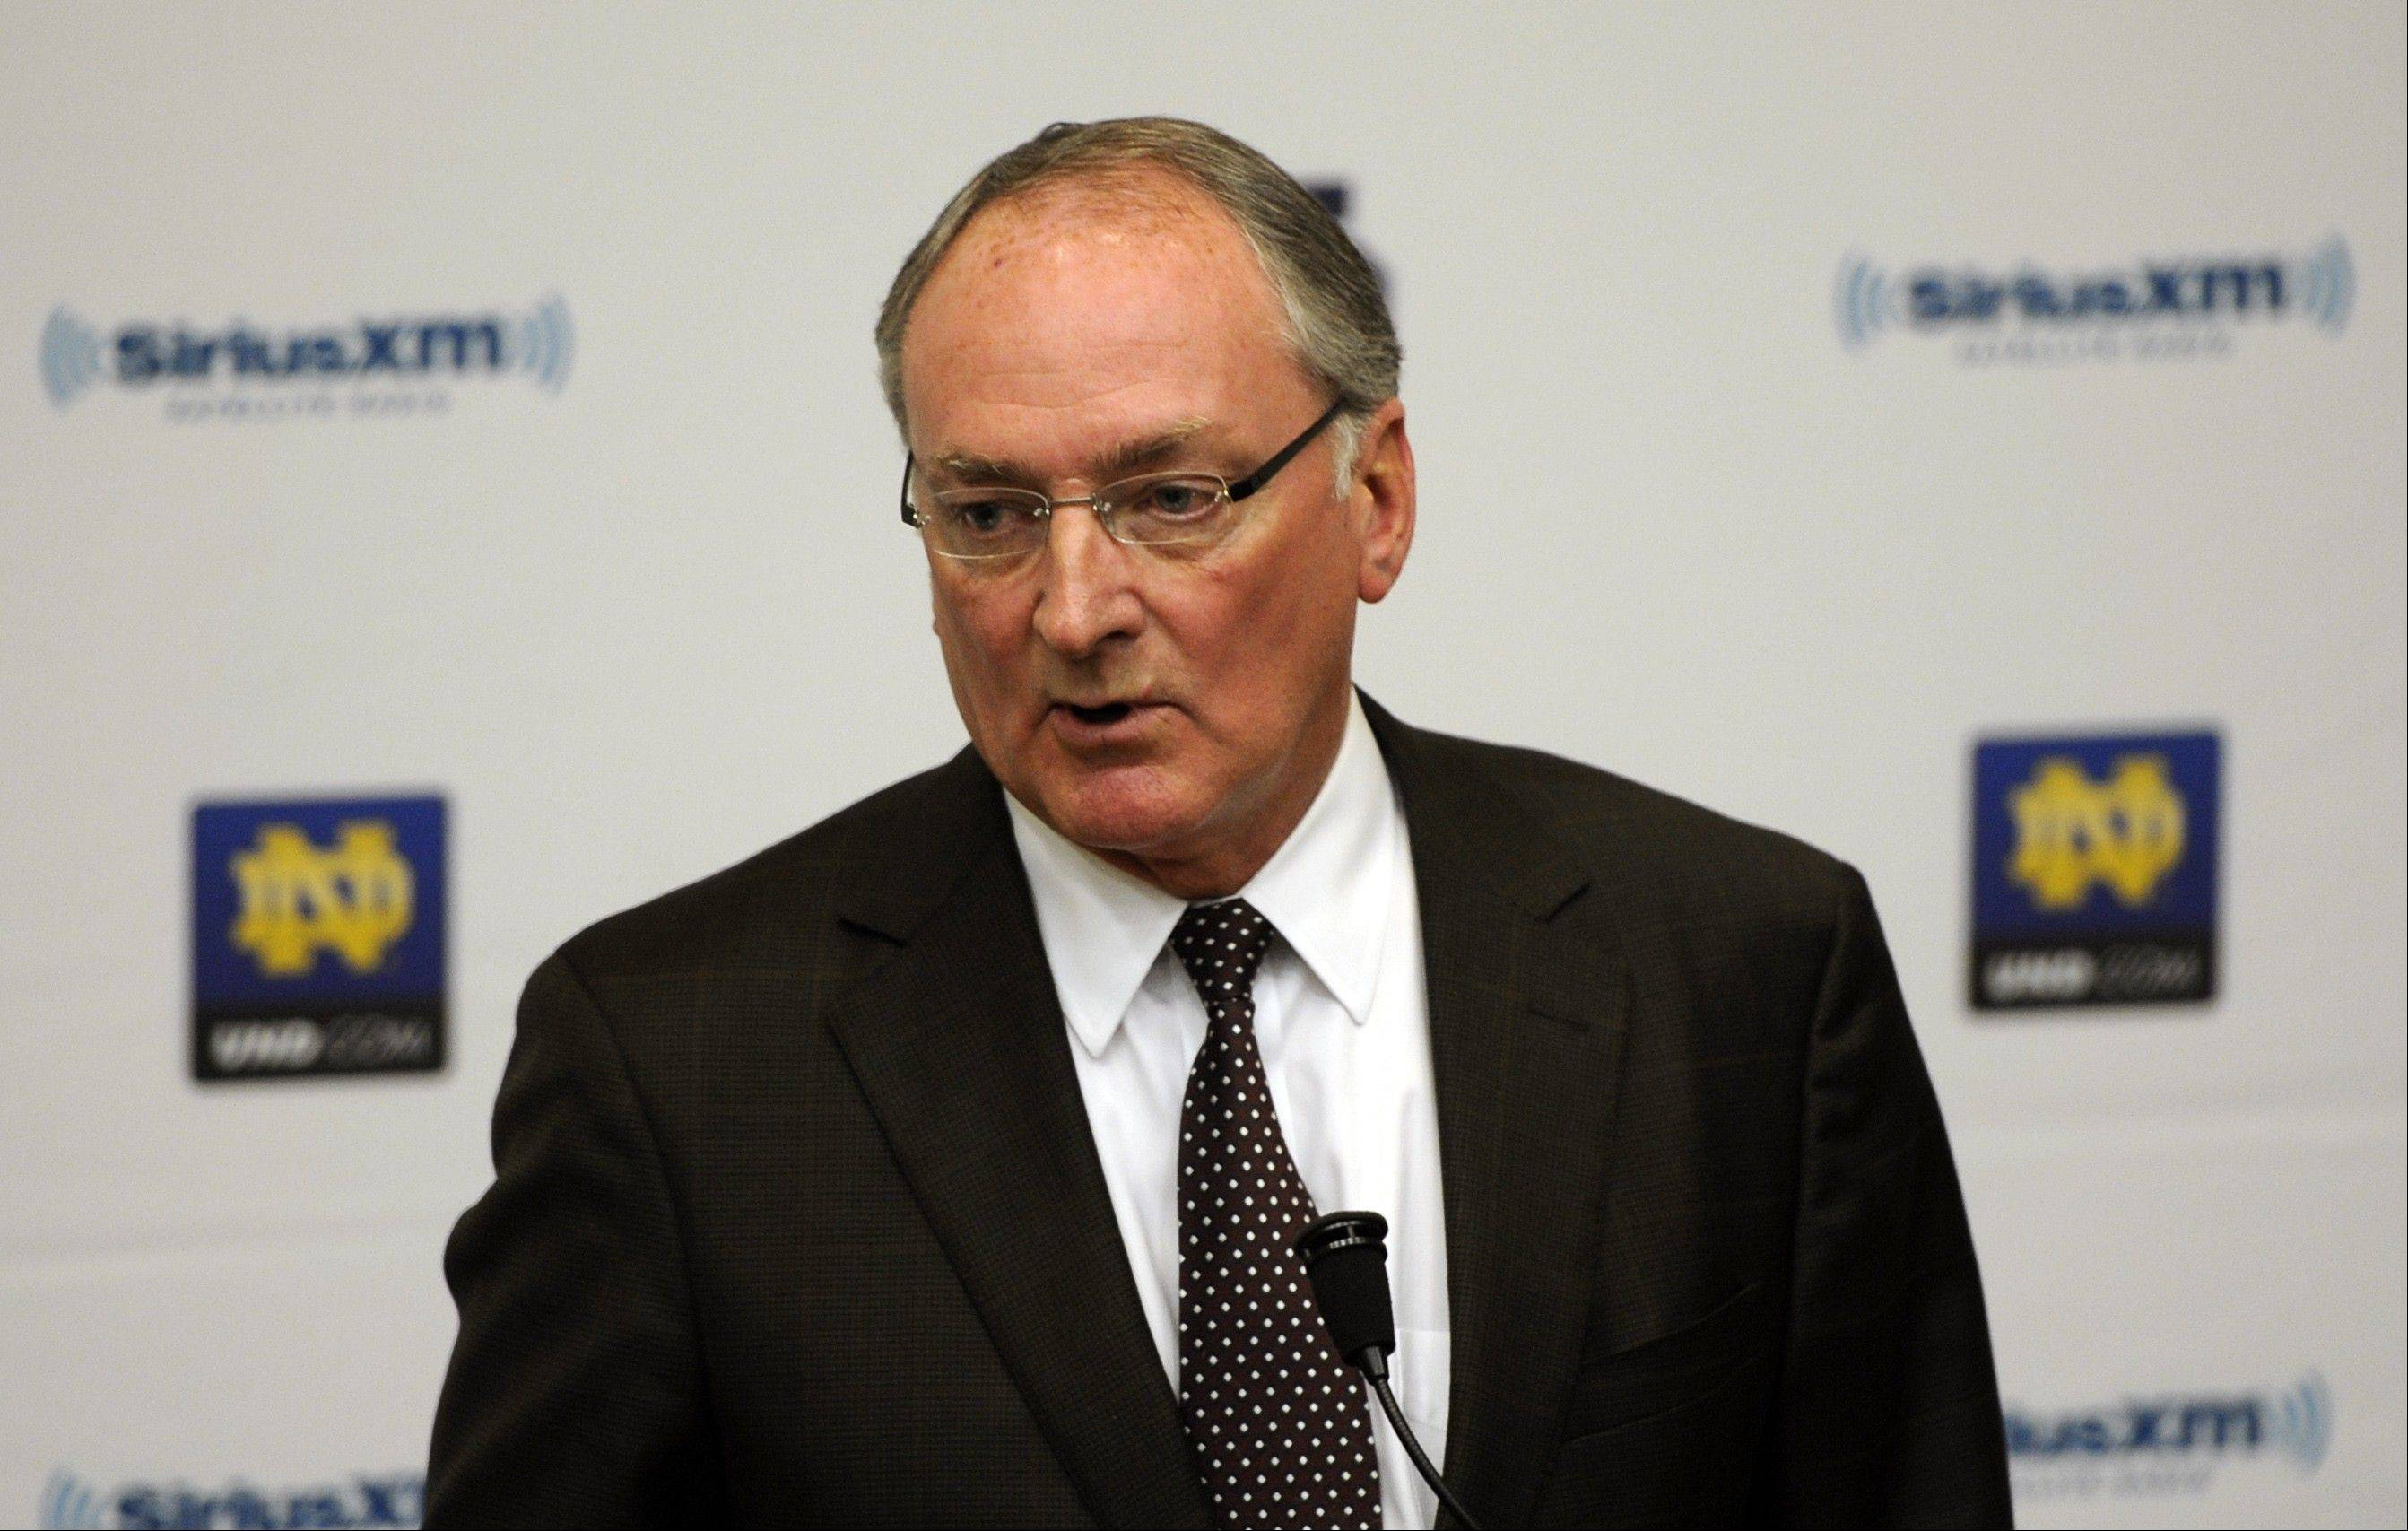 Notre Dame Athletic Director Jack Swarbrick believes that Manti Te'o was the victim of a hoax apparently perpetrated against the linebacker.